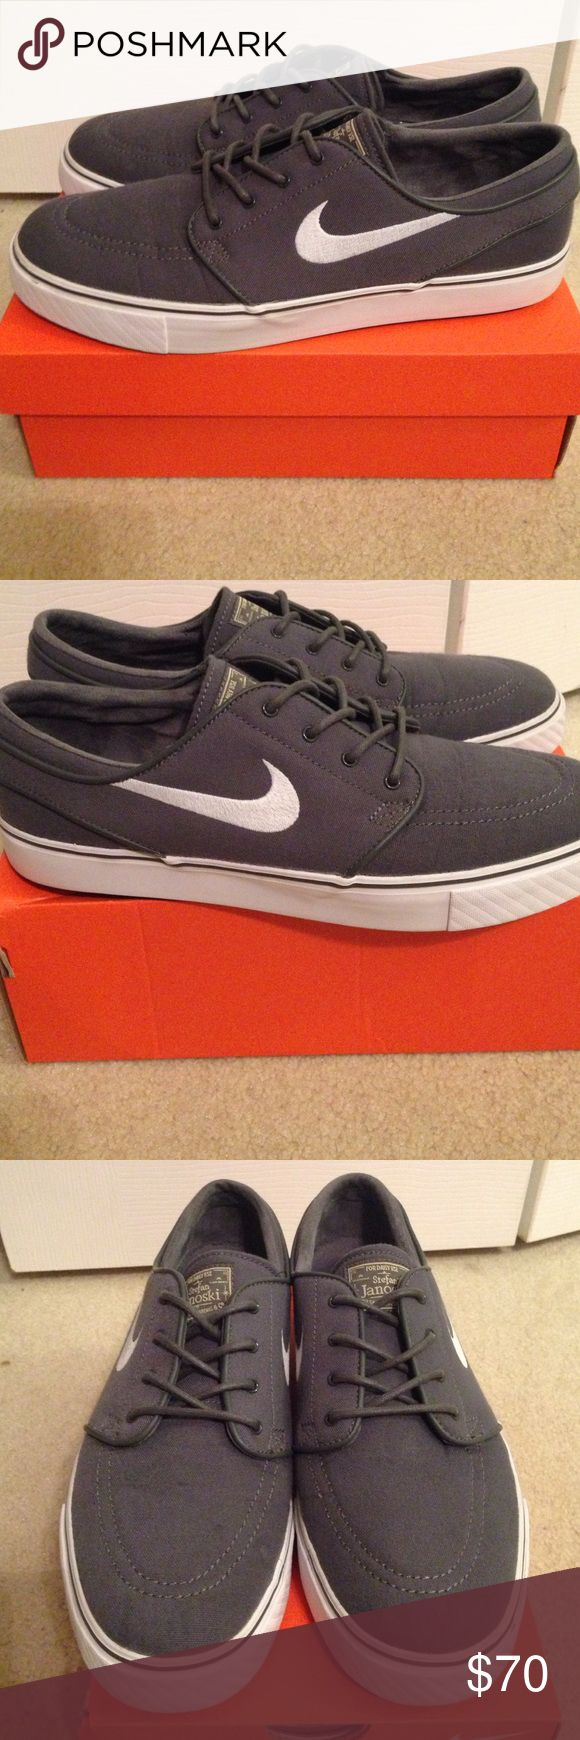 ... new style 4823b 59fec Mens grey nike shoes Nike SB Zoom Stefan Janoski  gray and white ... d250ec756772